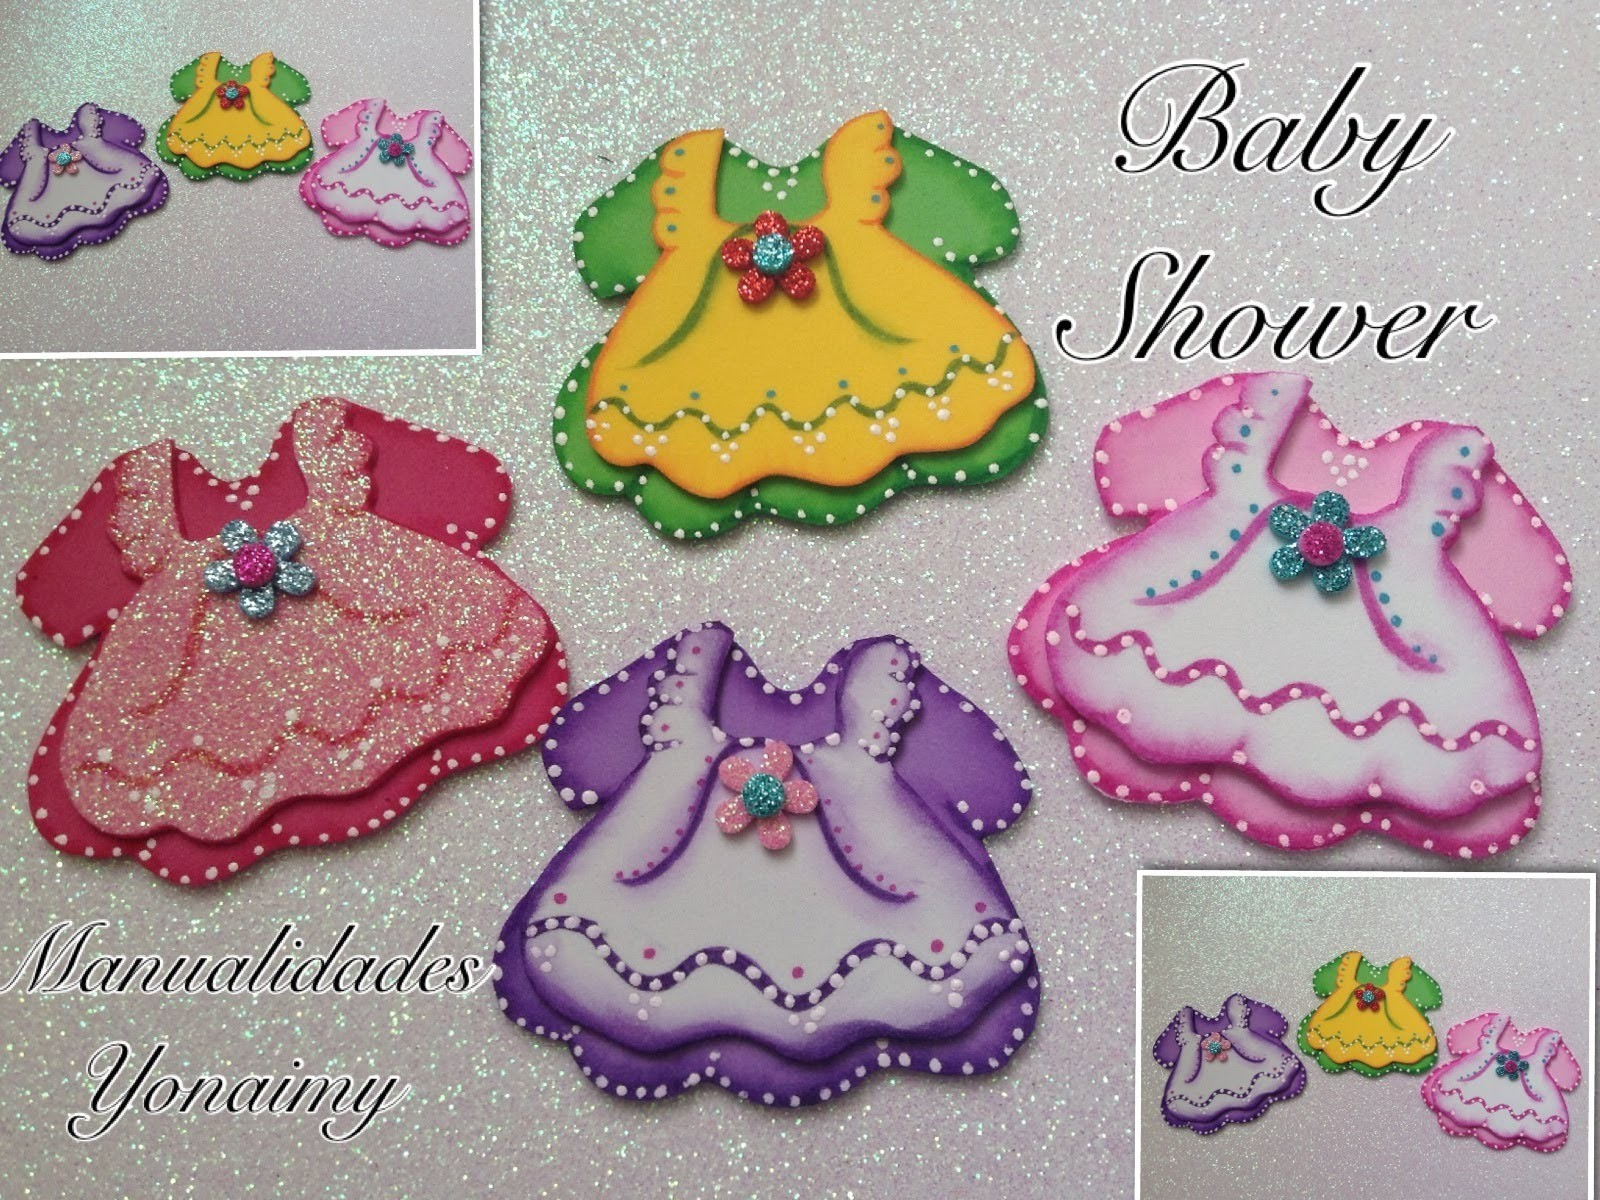 VESTIDITOS  DOBLES  PARA  BABY  SHOWER